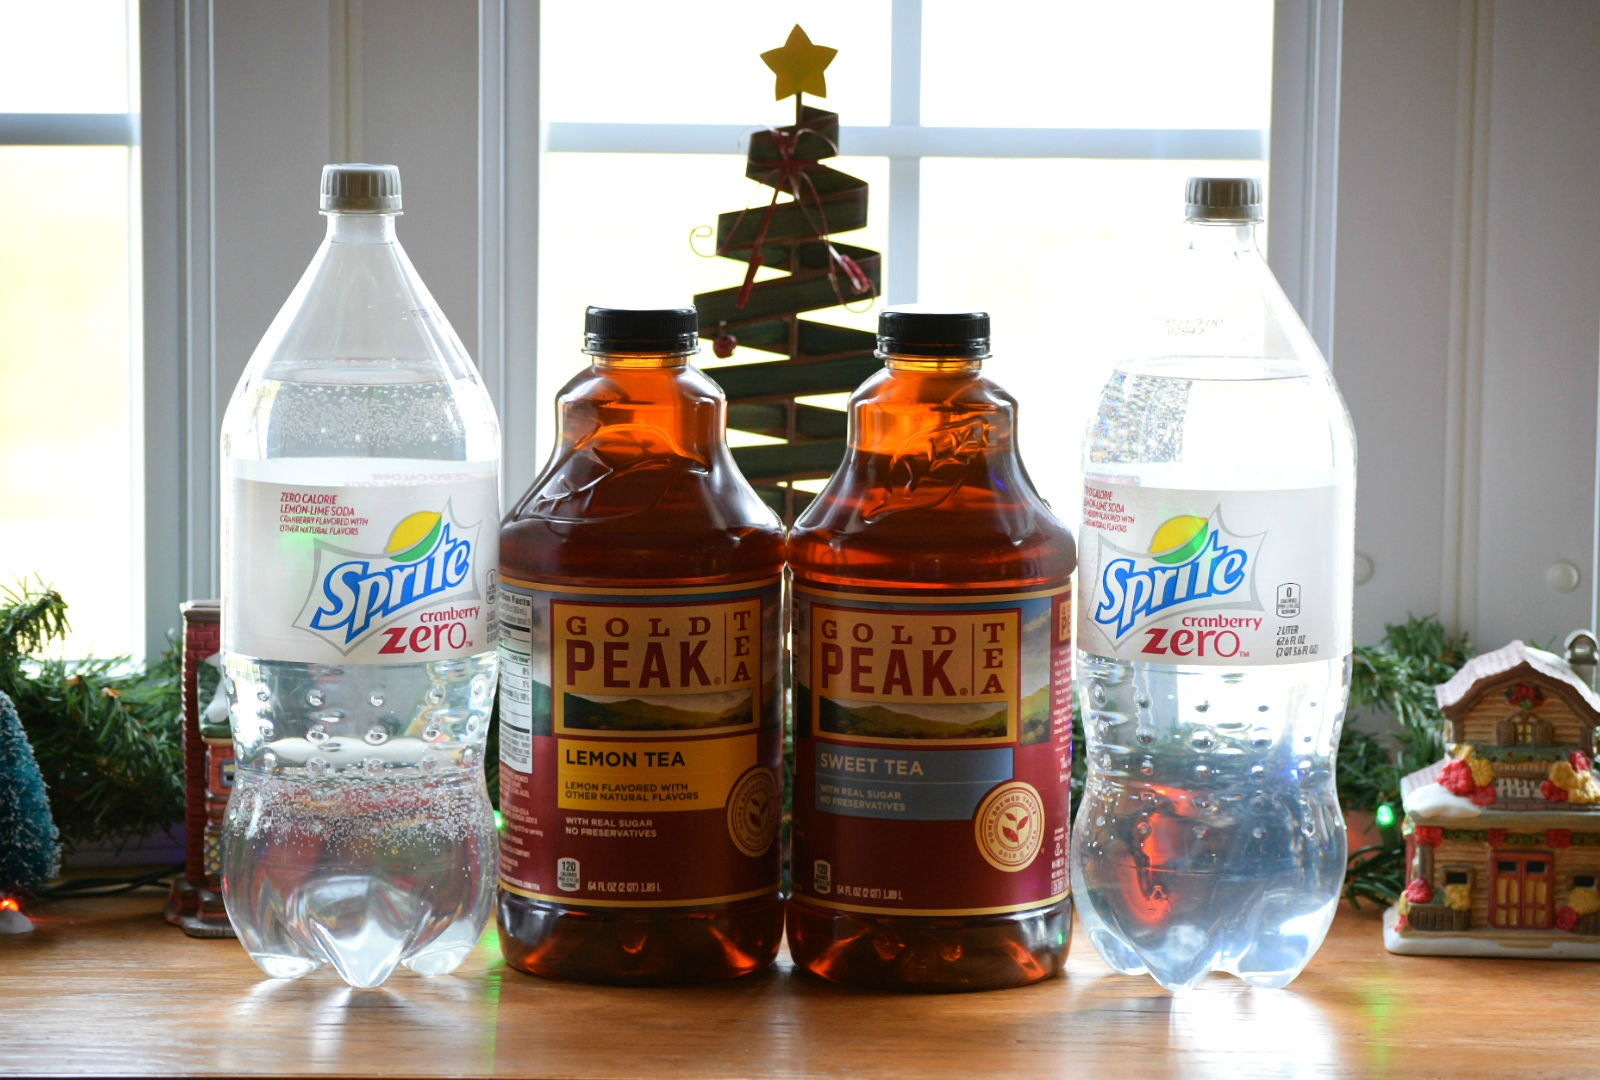 sprite-and-gold-peak-tea